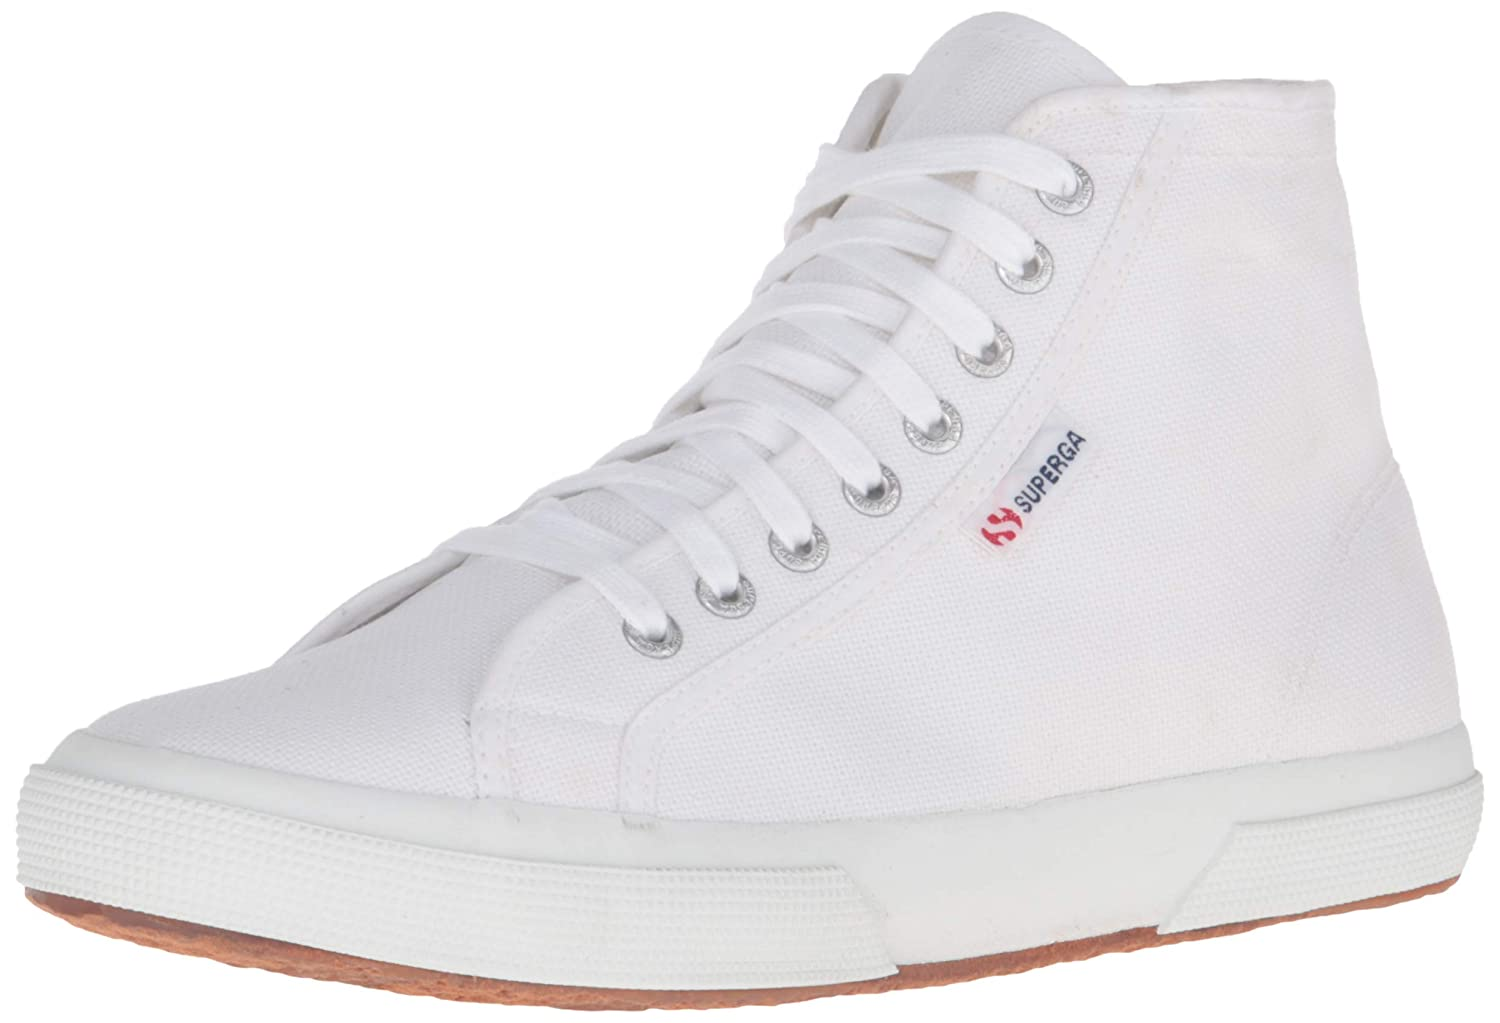 Retro Sneakers, Vintage Tennis Shoes Superga Womens 2750 Cotu Classic 1 Sneaker $67.20 AT vintagedancer.com